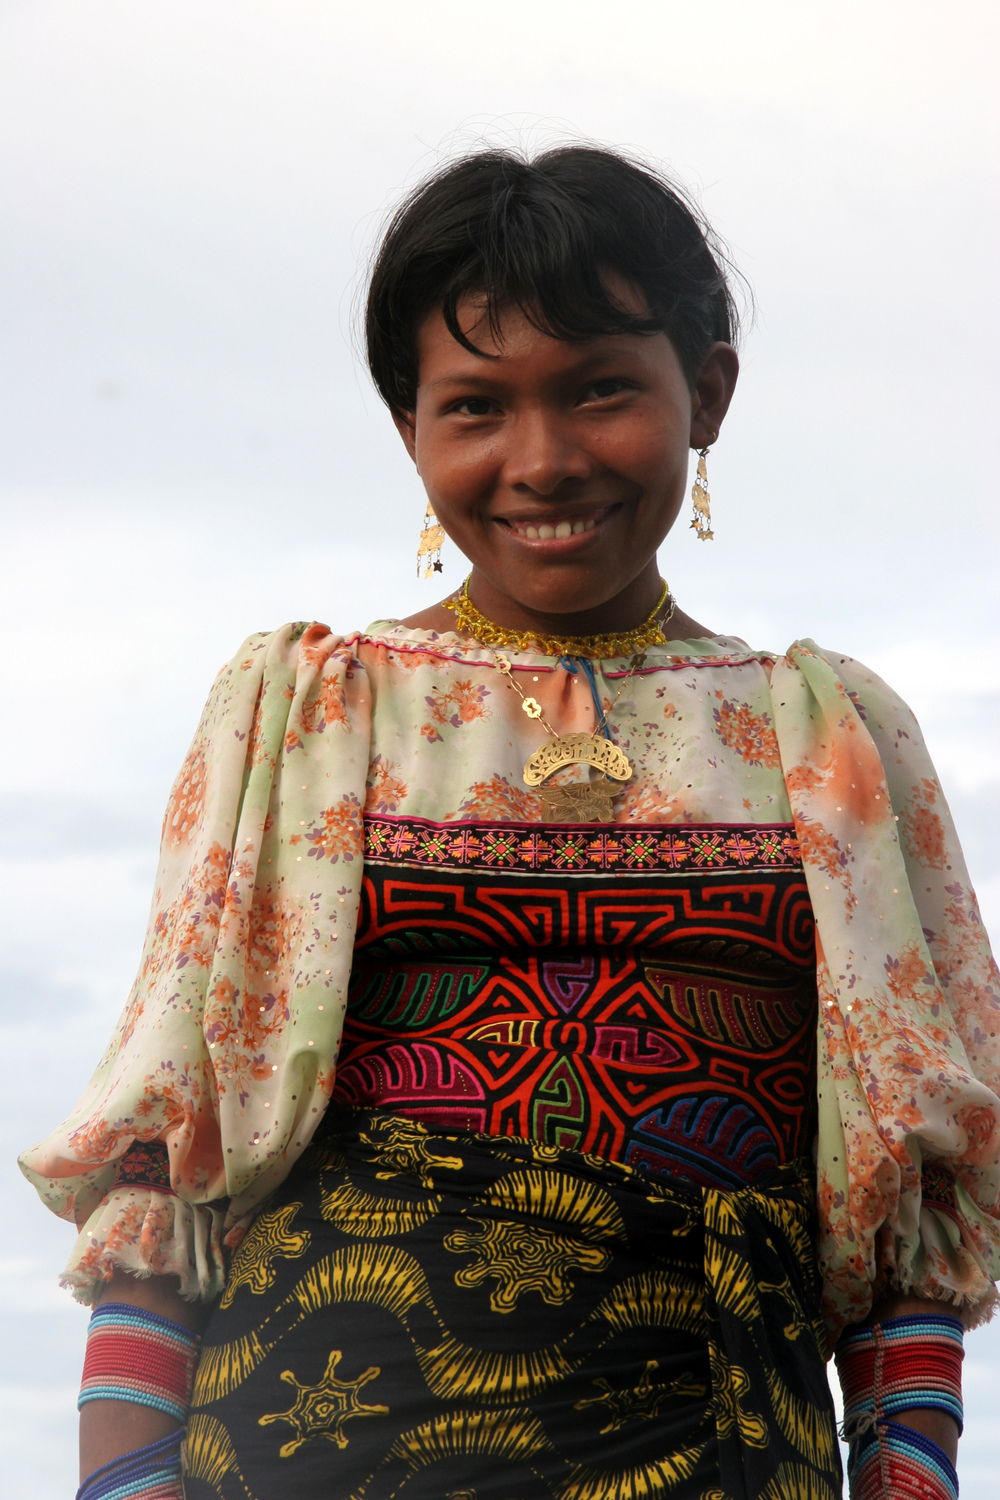 Figure 1: A young Cuna woman from the San Blas Islands, Panama. Photo credit: Yves Picq http://veton.picq.fr GFDL (http://www.gnu.org/copyleft/fdl.html)